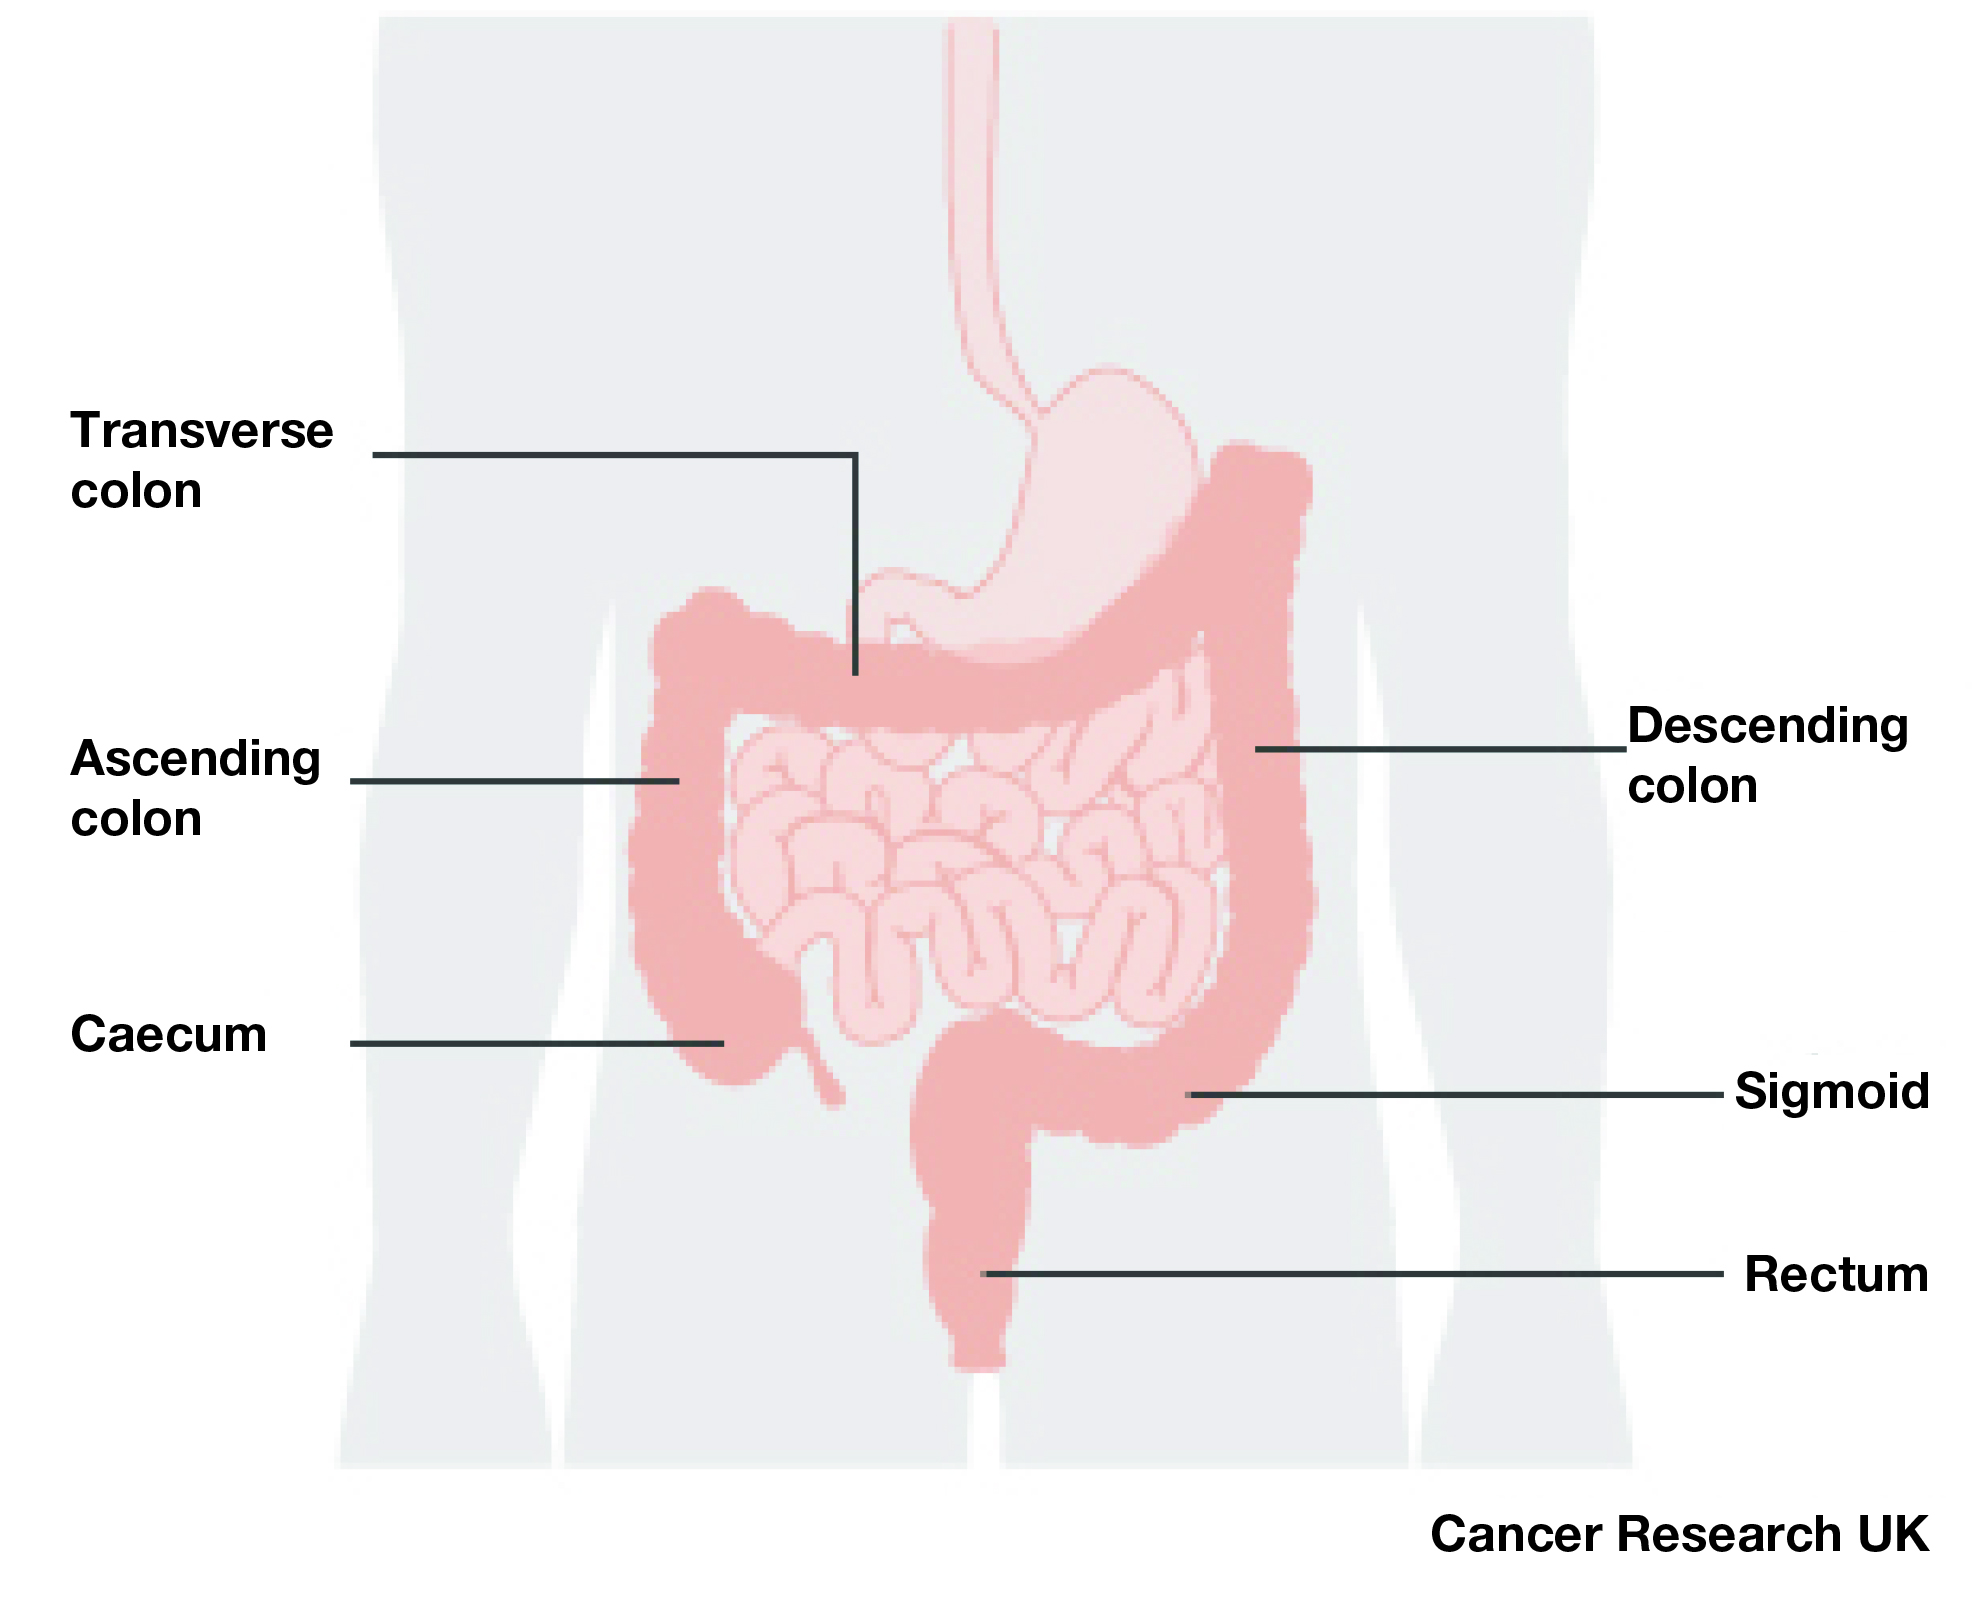 The bowel- also known as the colon